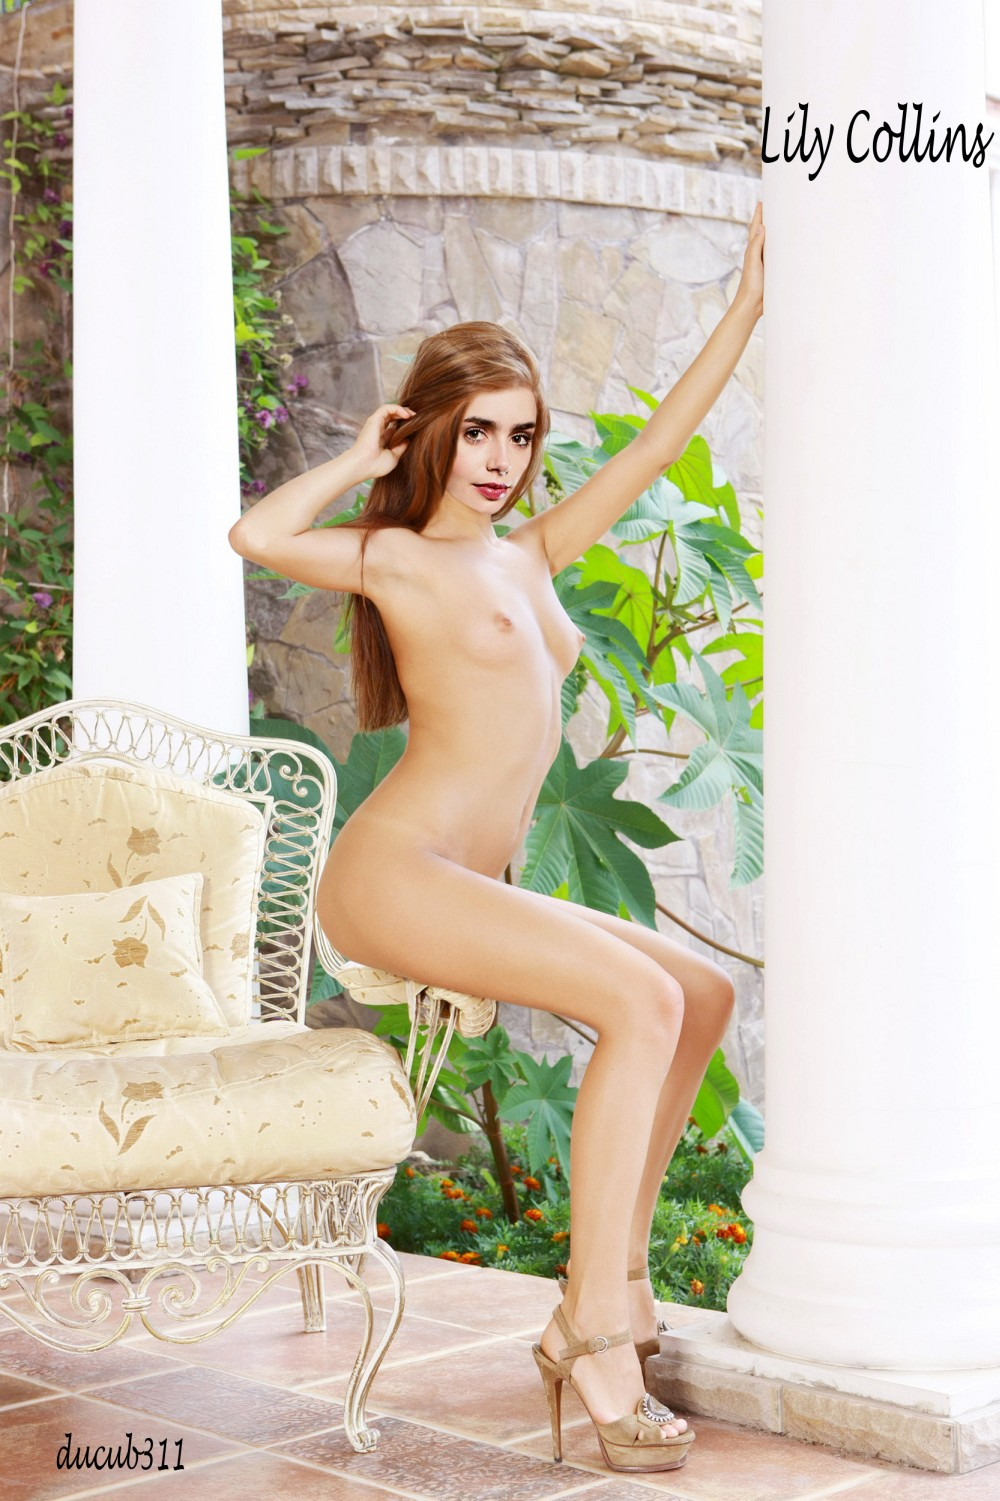 Lily Collins Nude Fakes-020